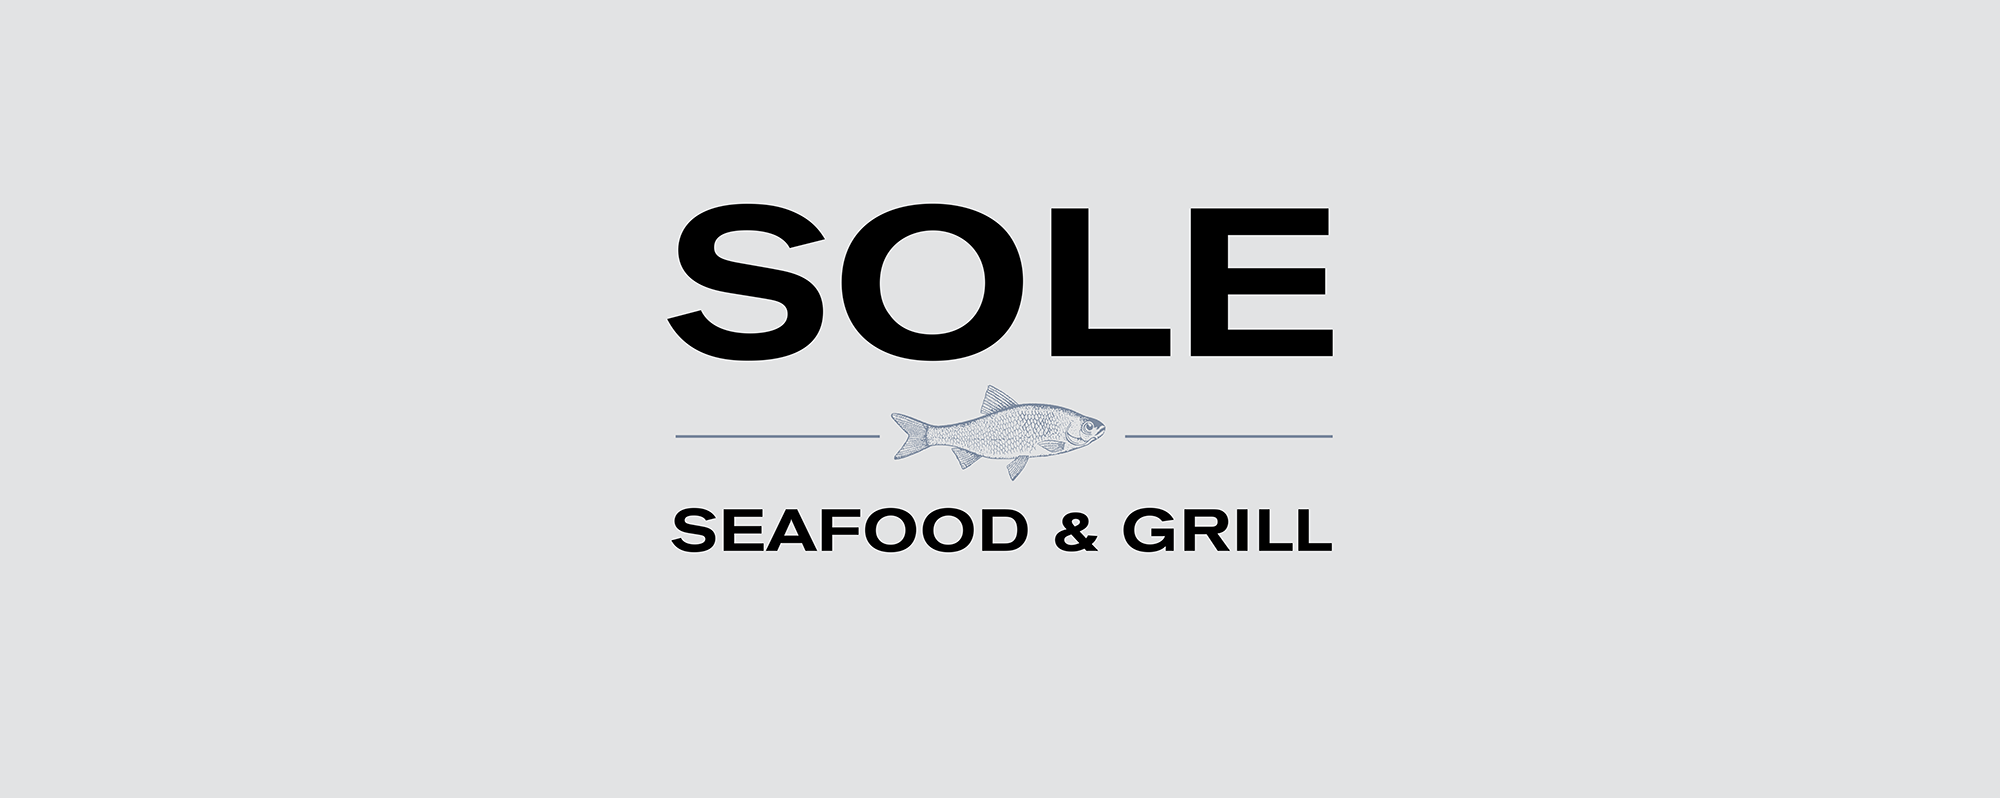 Sole-Restaurant-Logo.png